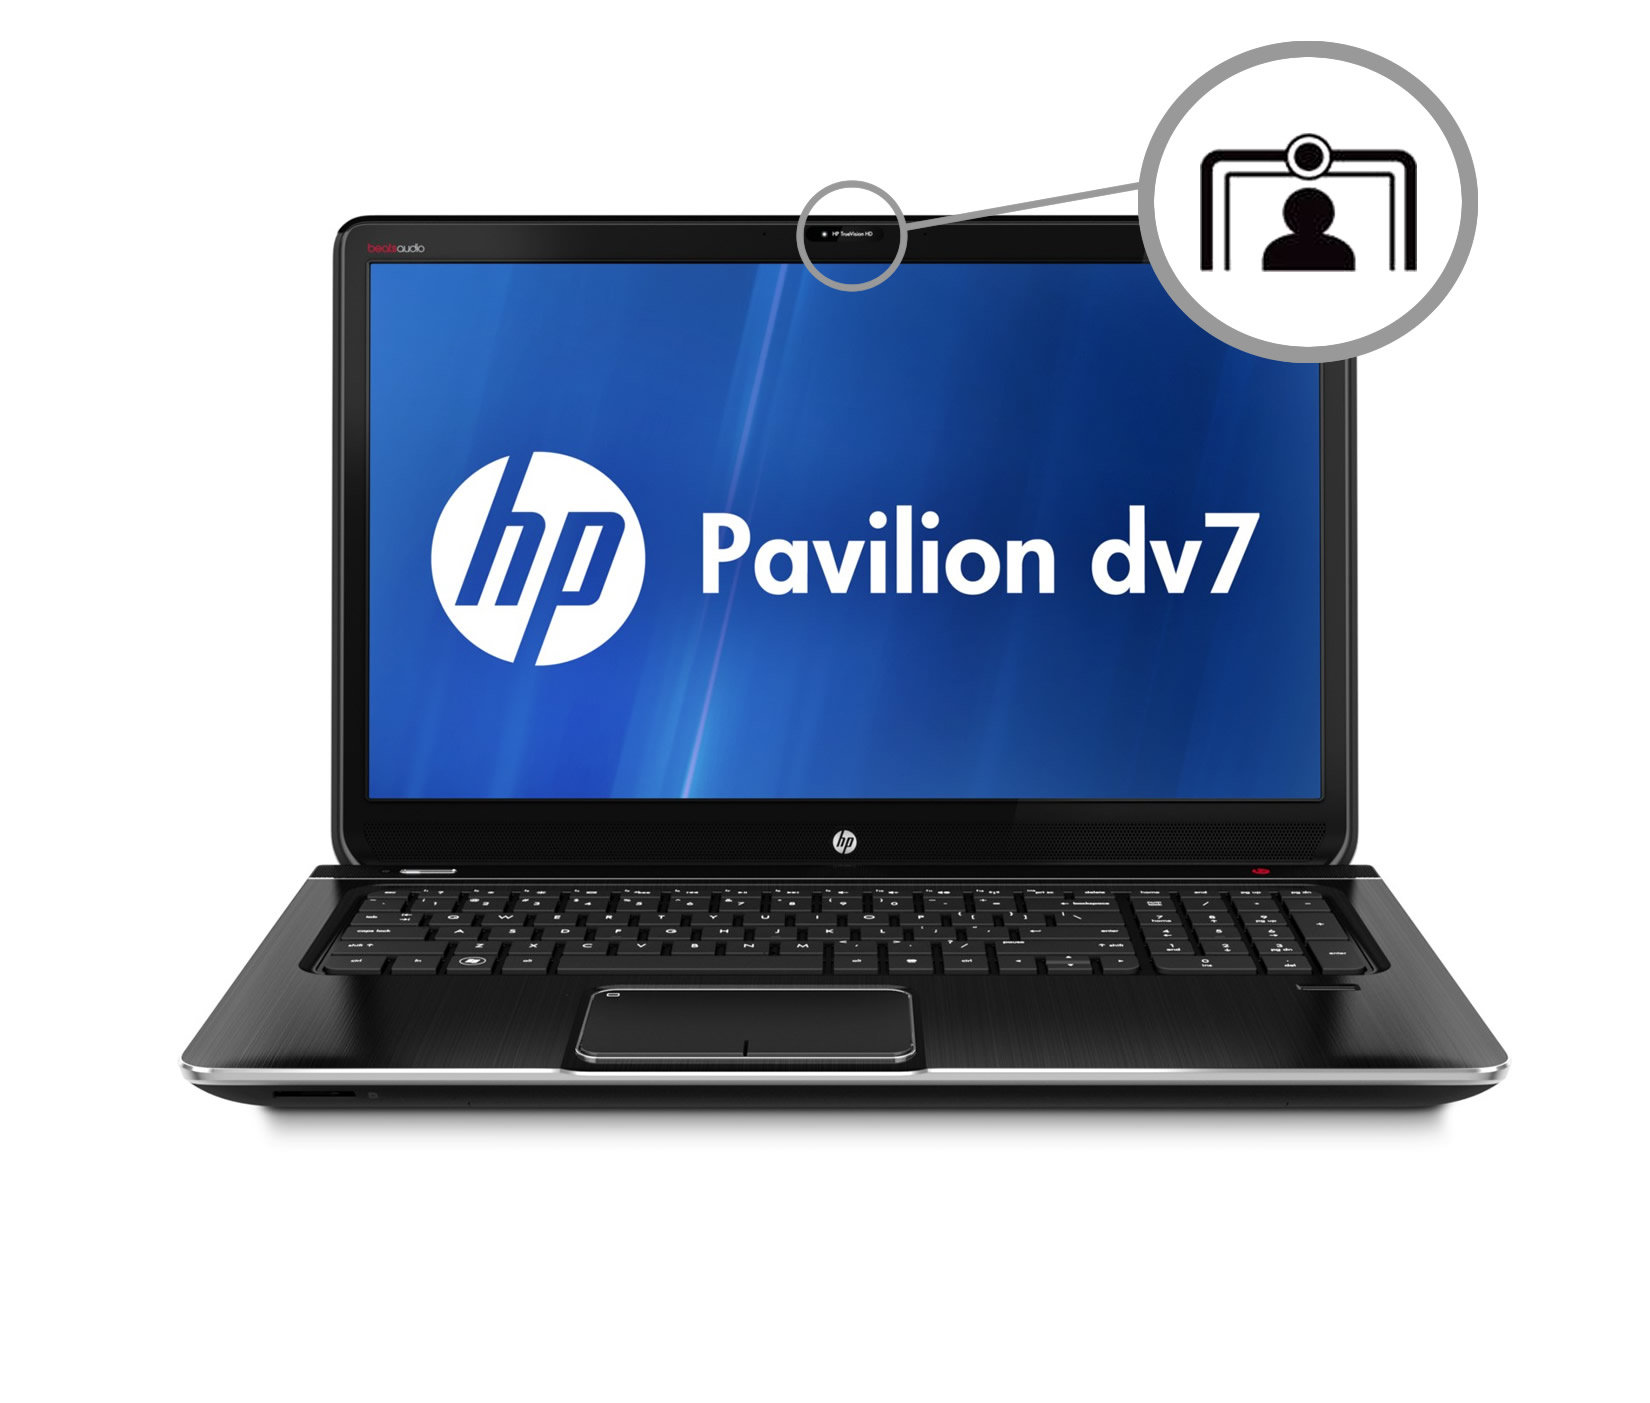 hp pavilion dv7 7051ea 17 3 inch laptop intel core i5 2450m 2 5ghz 6gb ram 750gb hdd windows. Black Bedroom Furniture Sets. Home Design Ideas